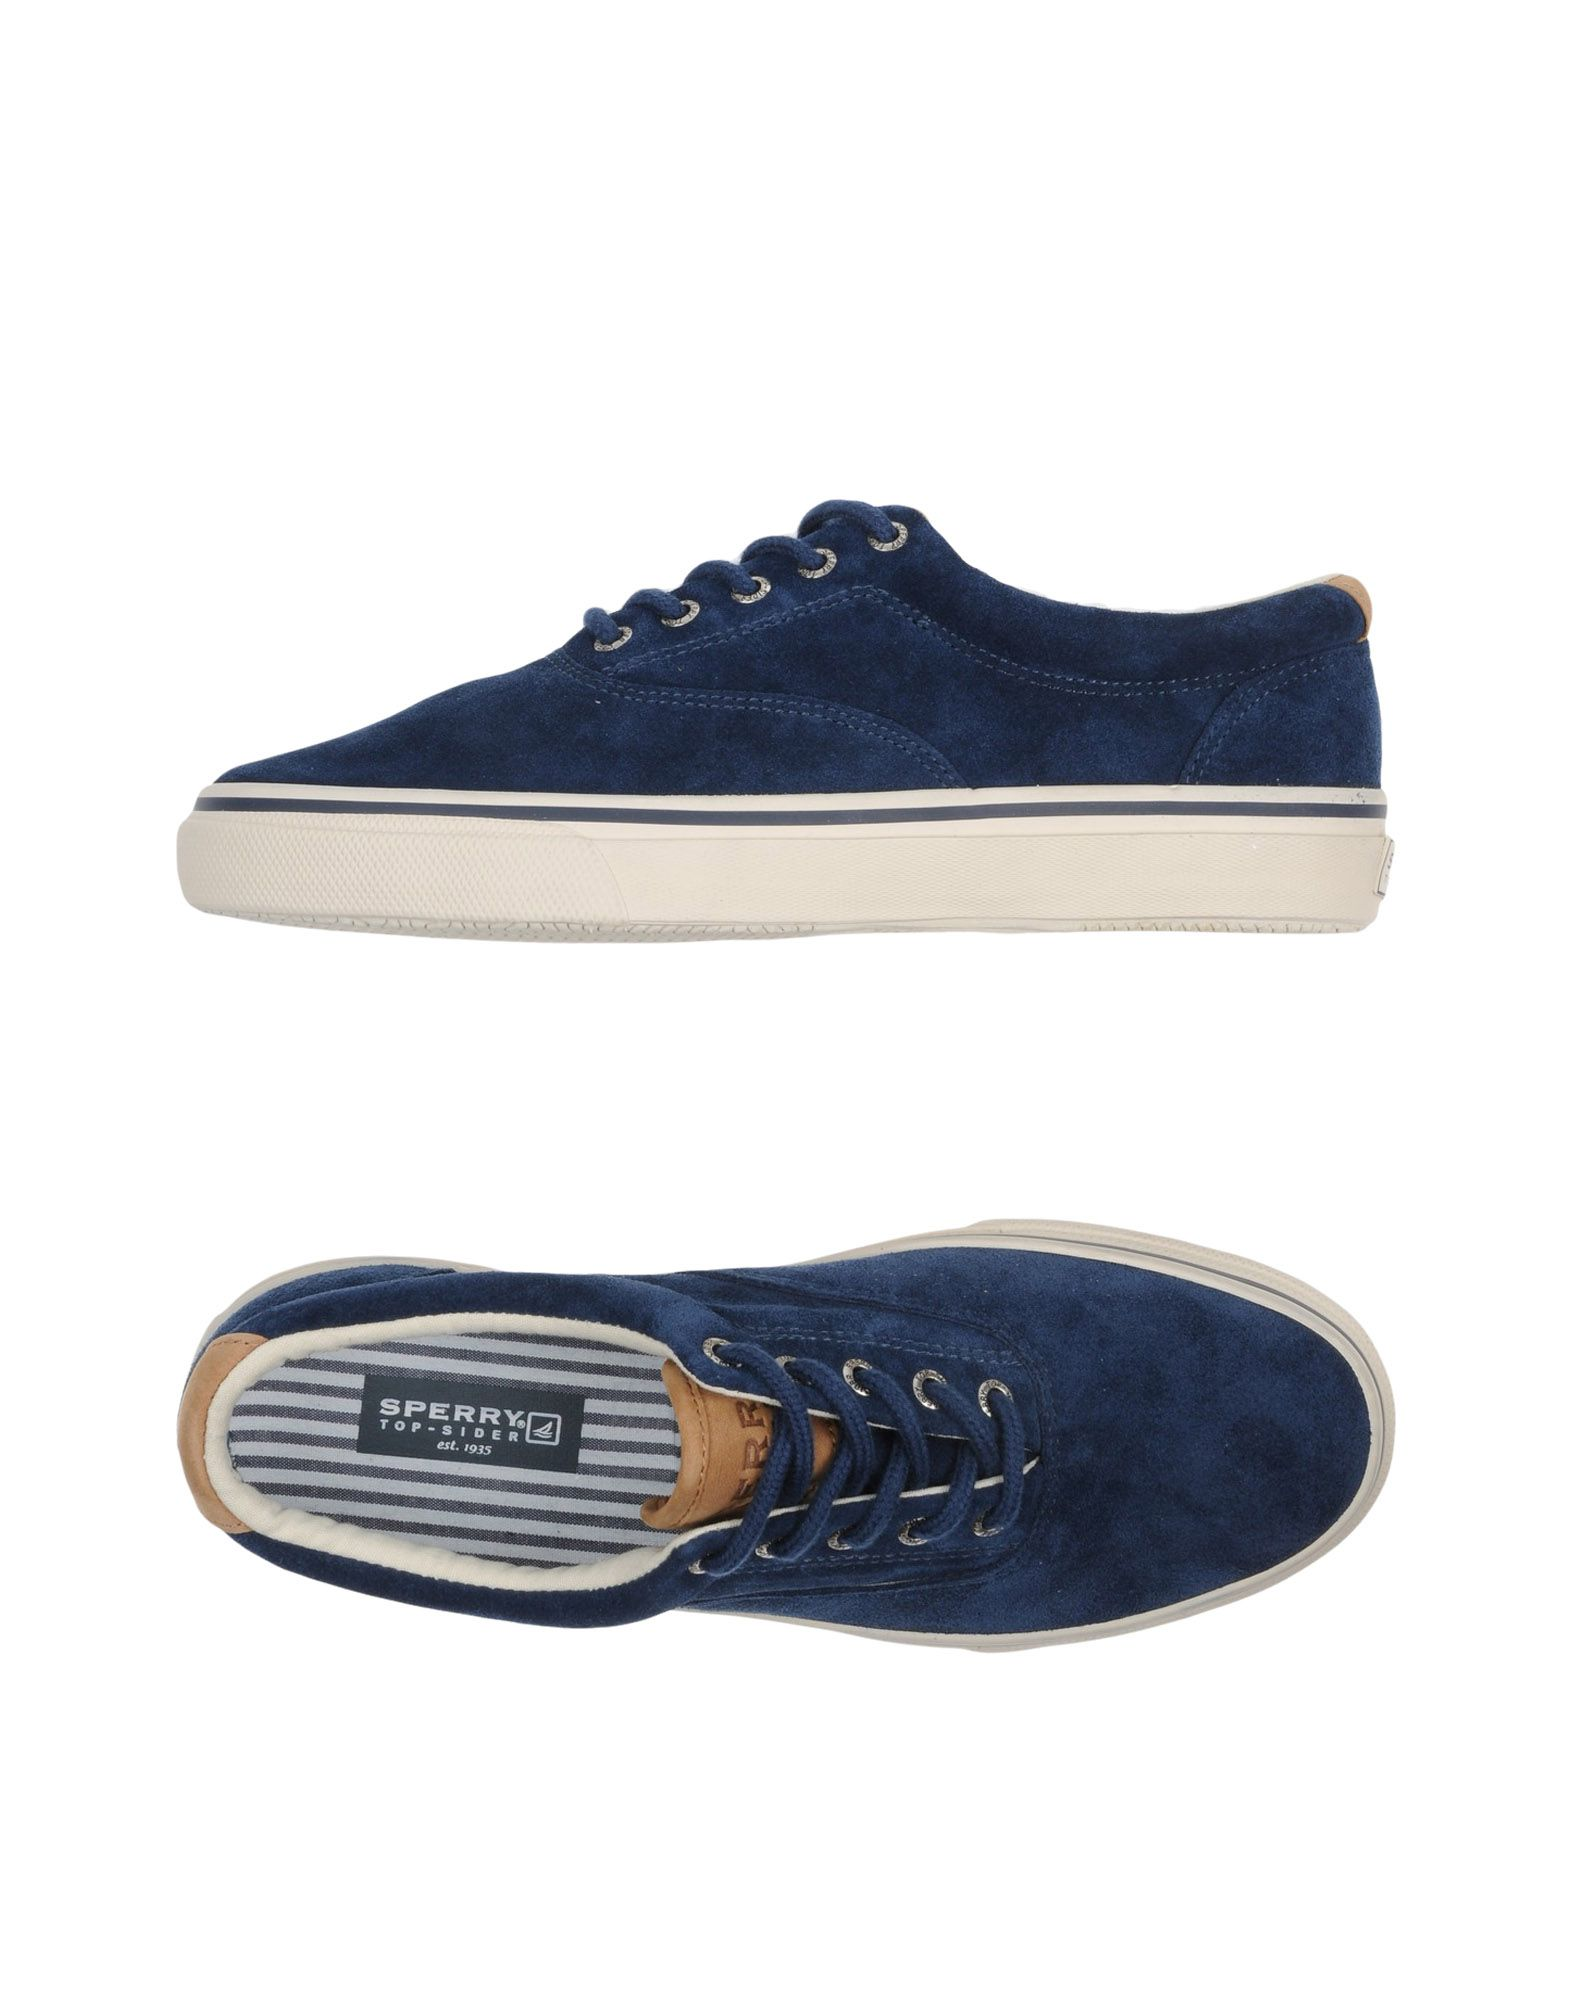 Sperry Sperry Top-Sider Sneakers - Men Sperry Sperry Top-Sider Sneakers online on  United Kingdom - 11242588GI 2ce4cb